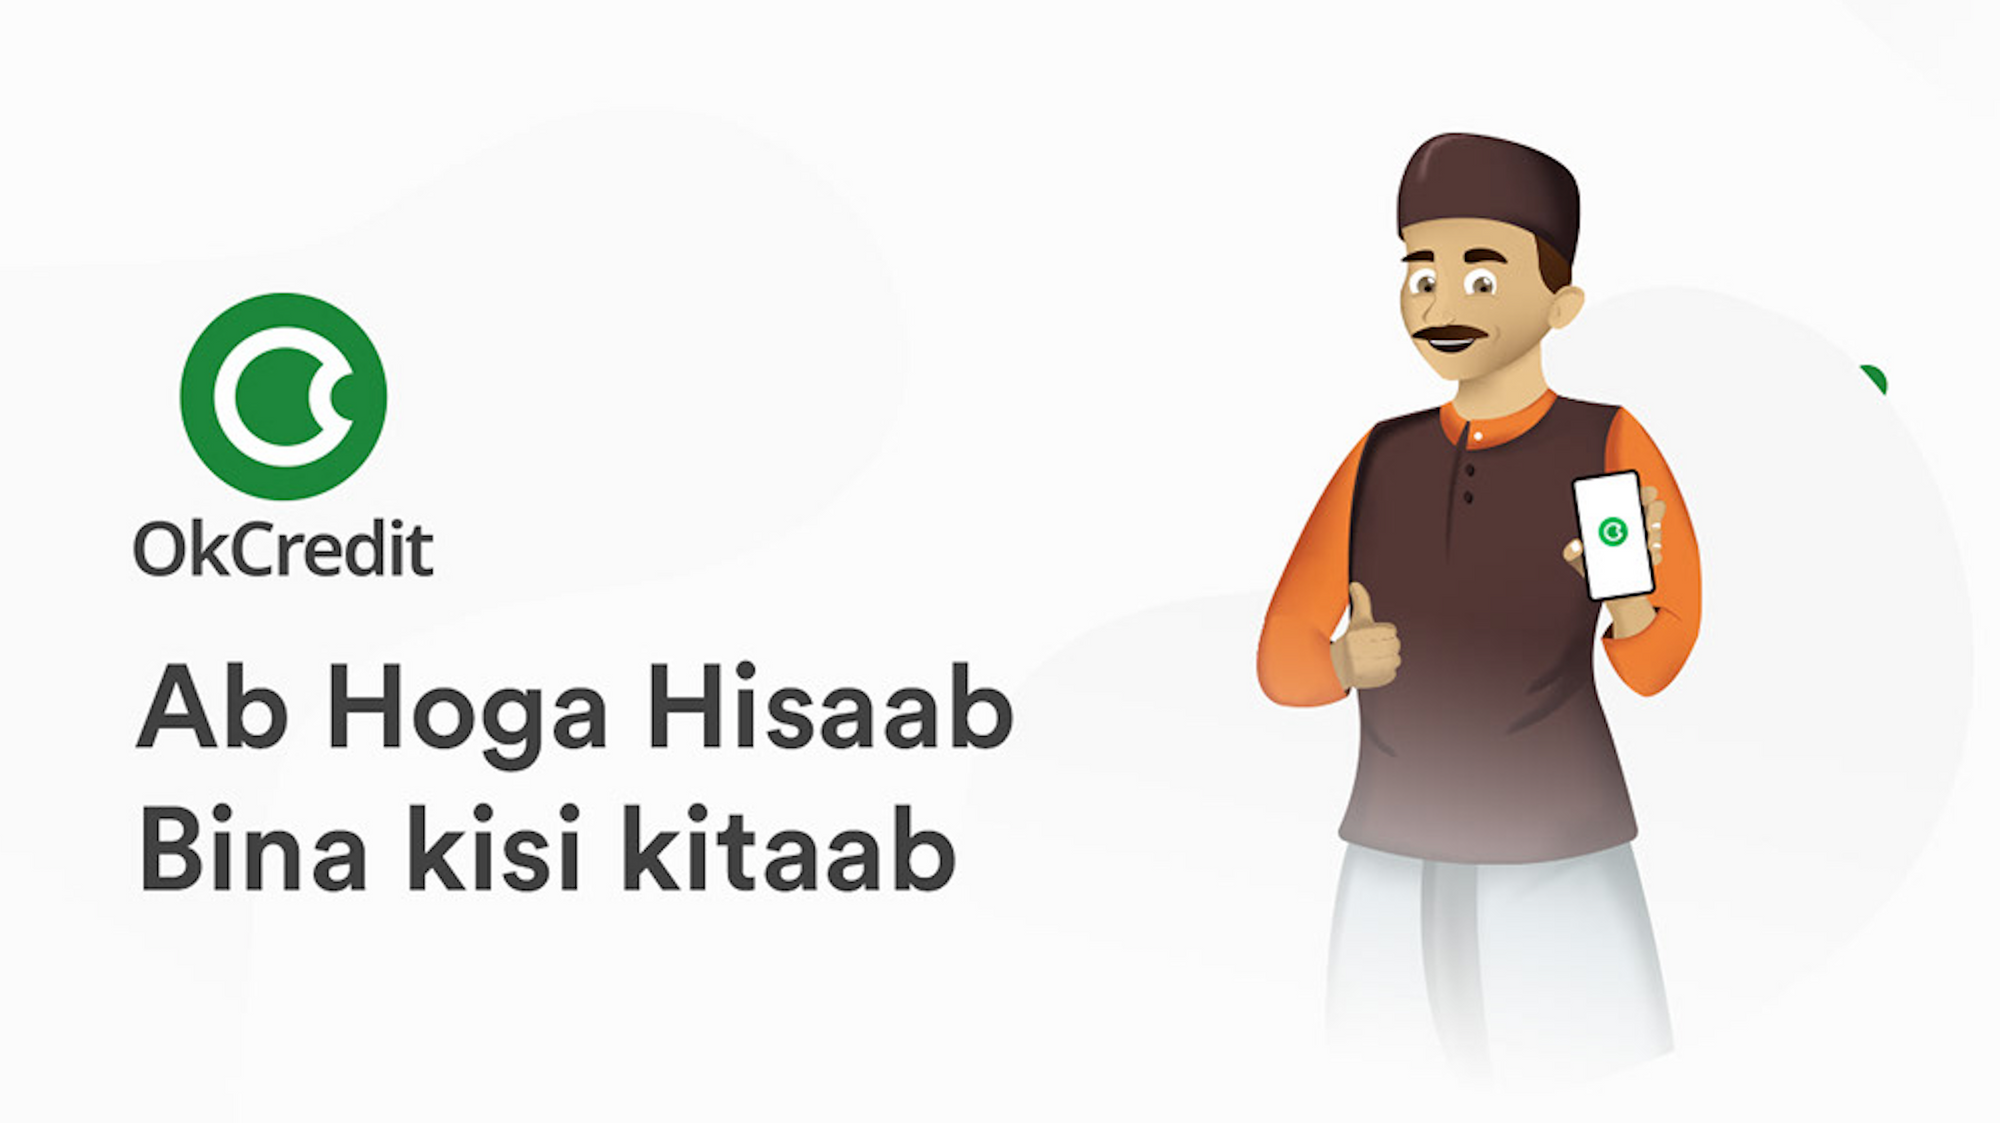 animated character holding phone in hand using okcredit app in it